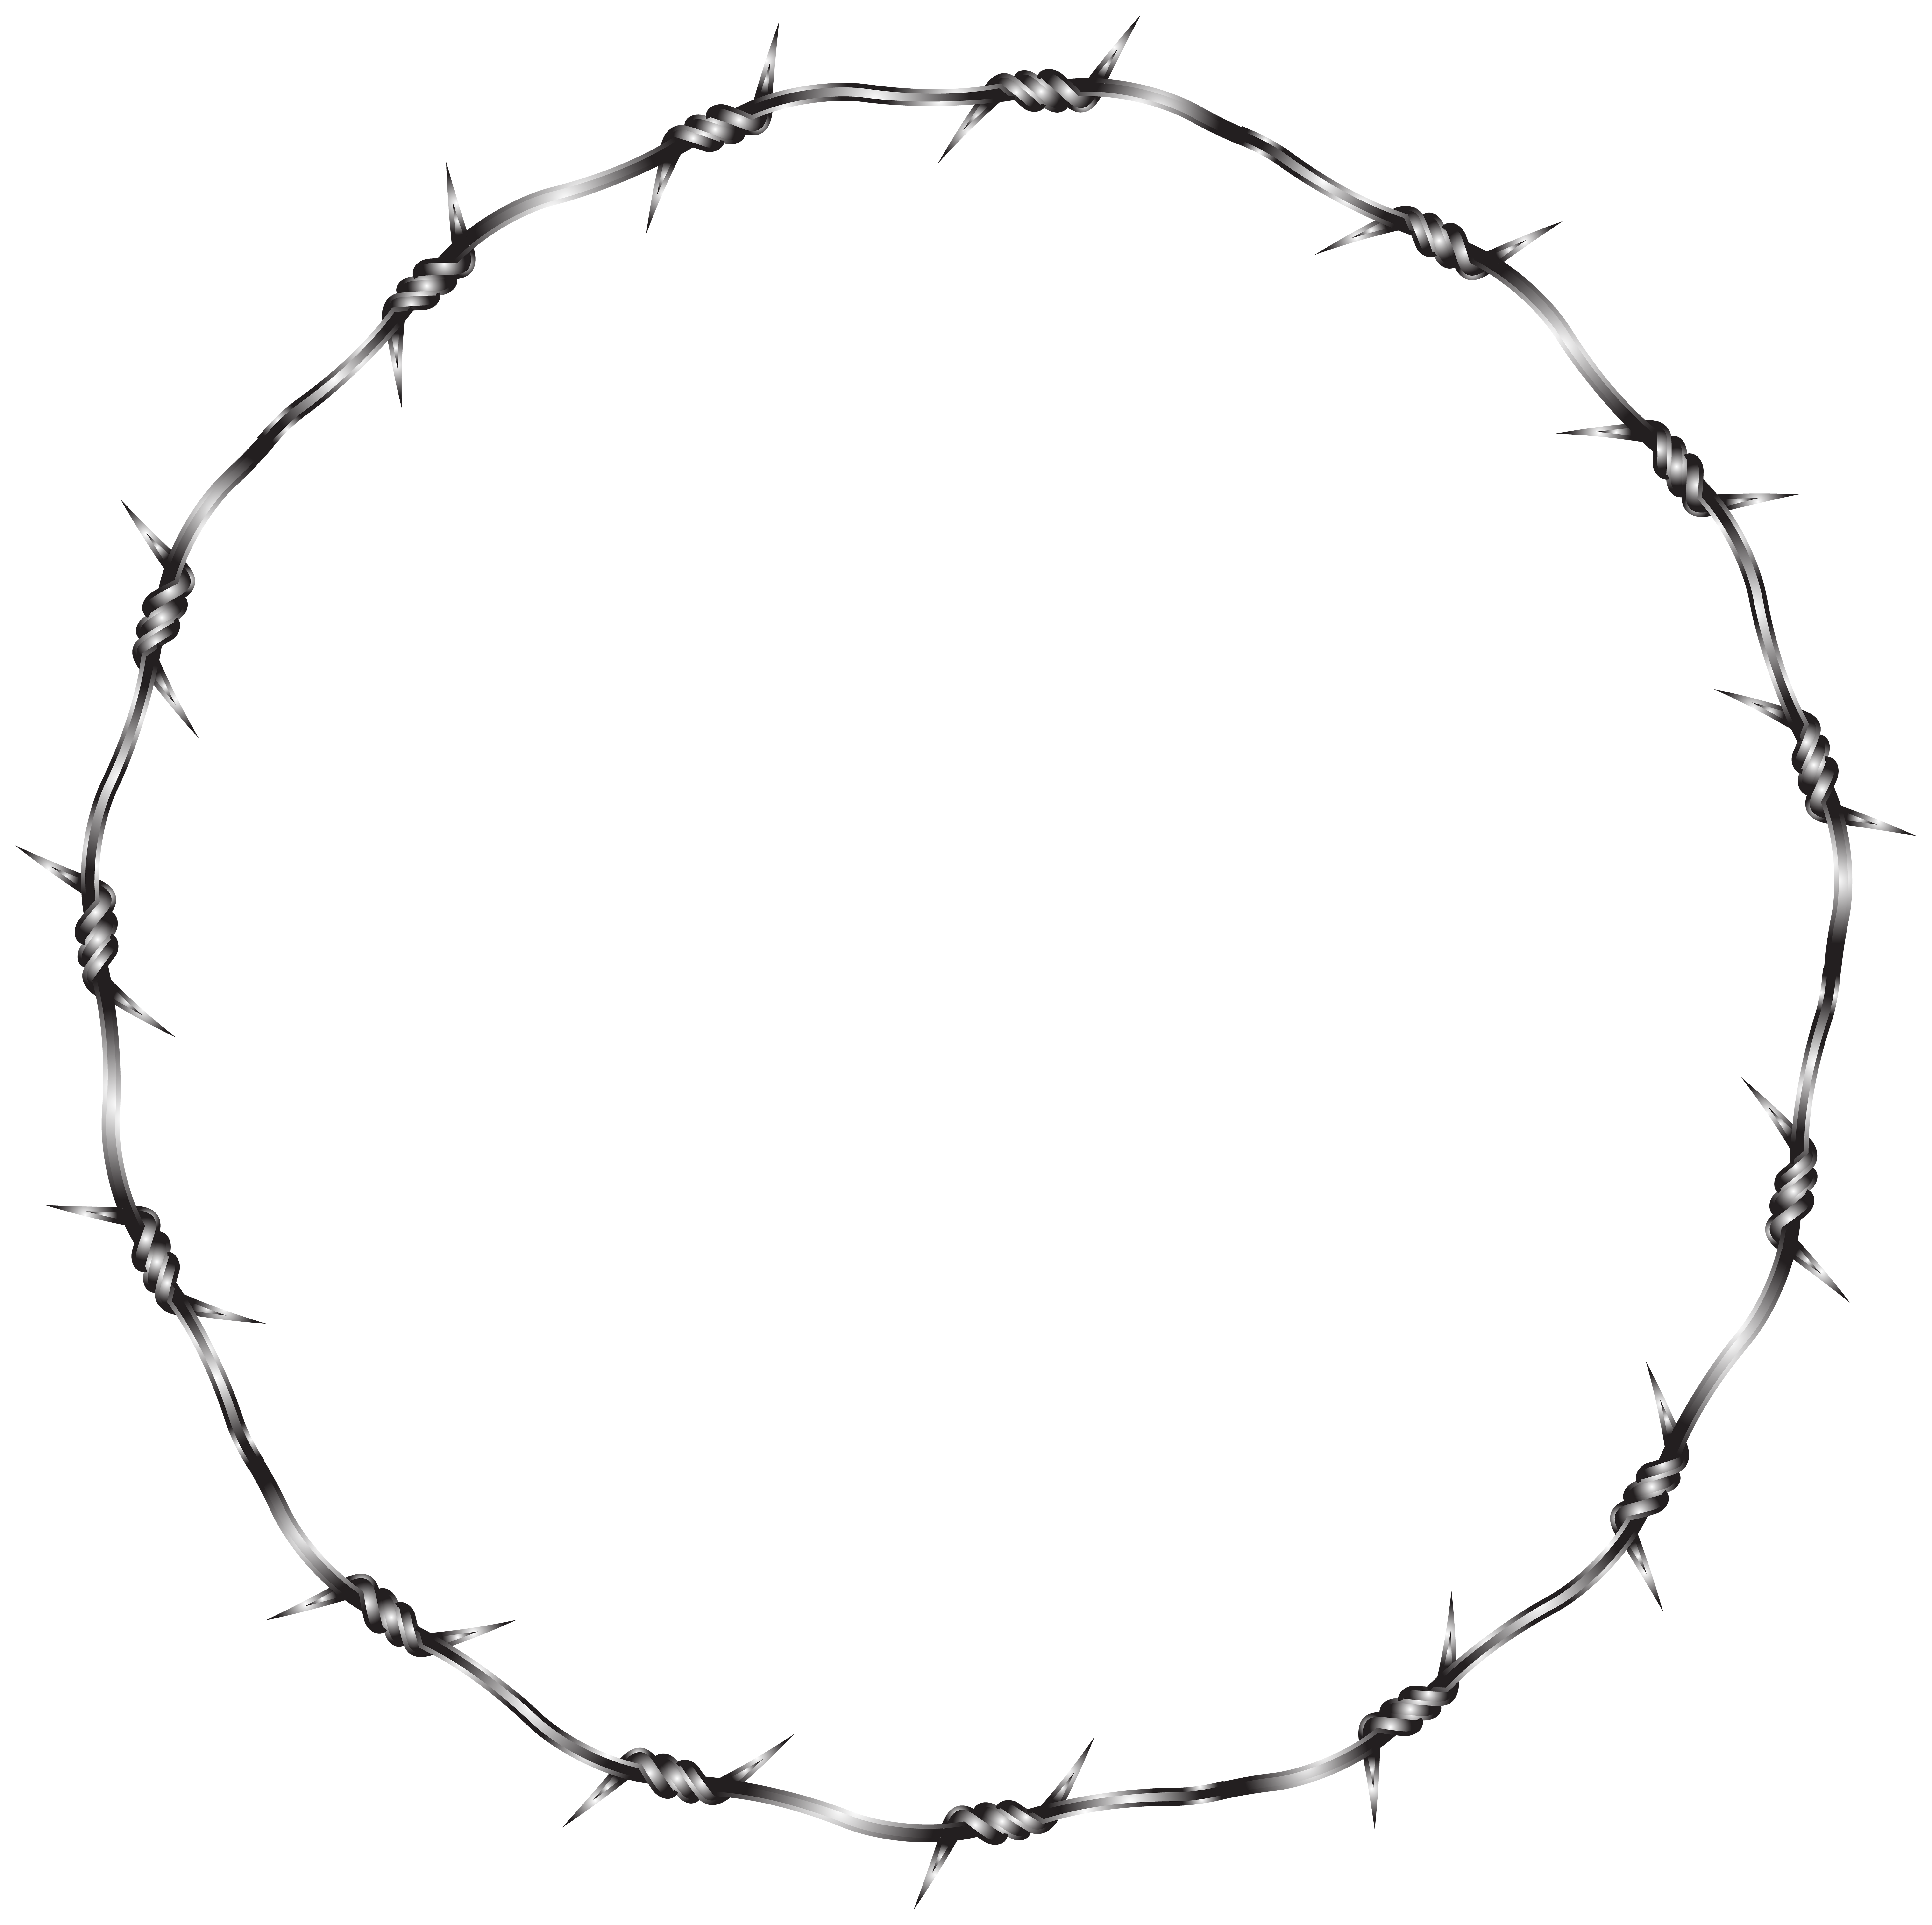 Transparent circle png. Wire round border clip